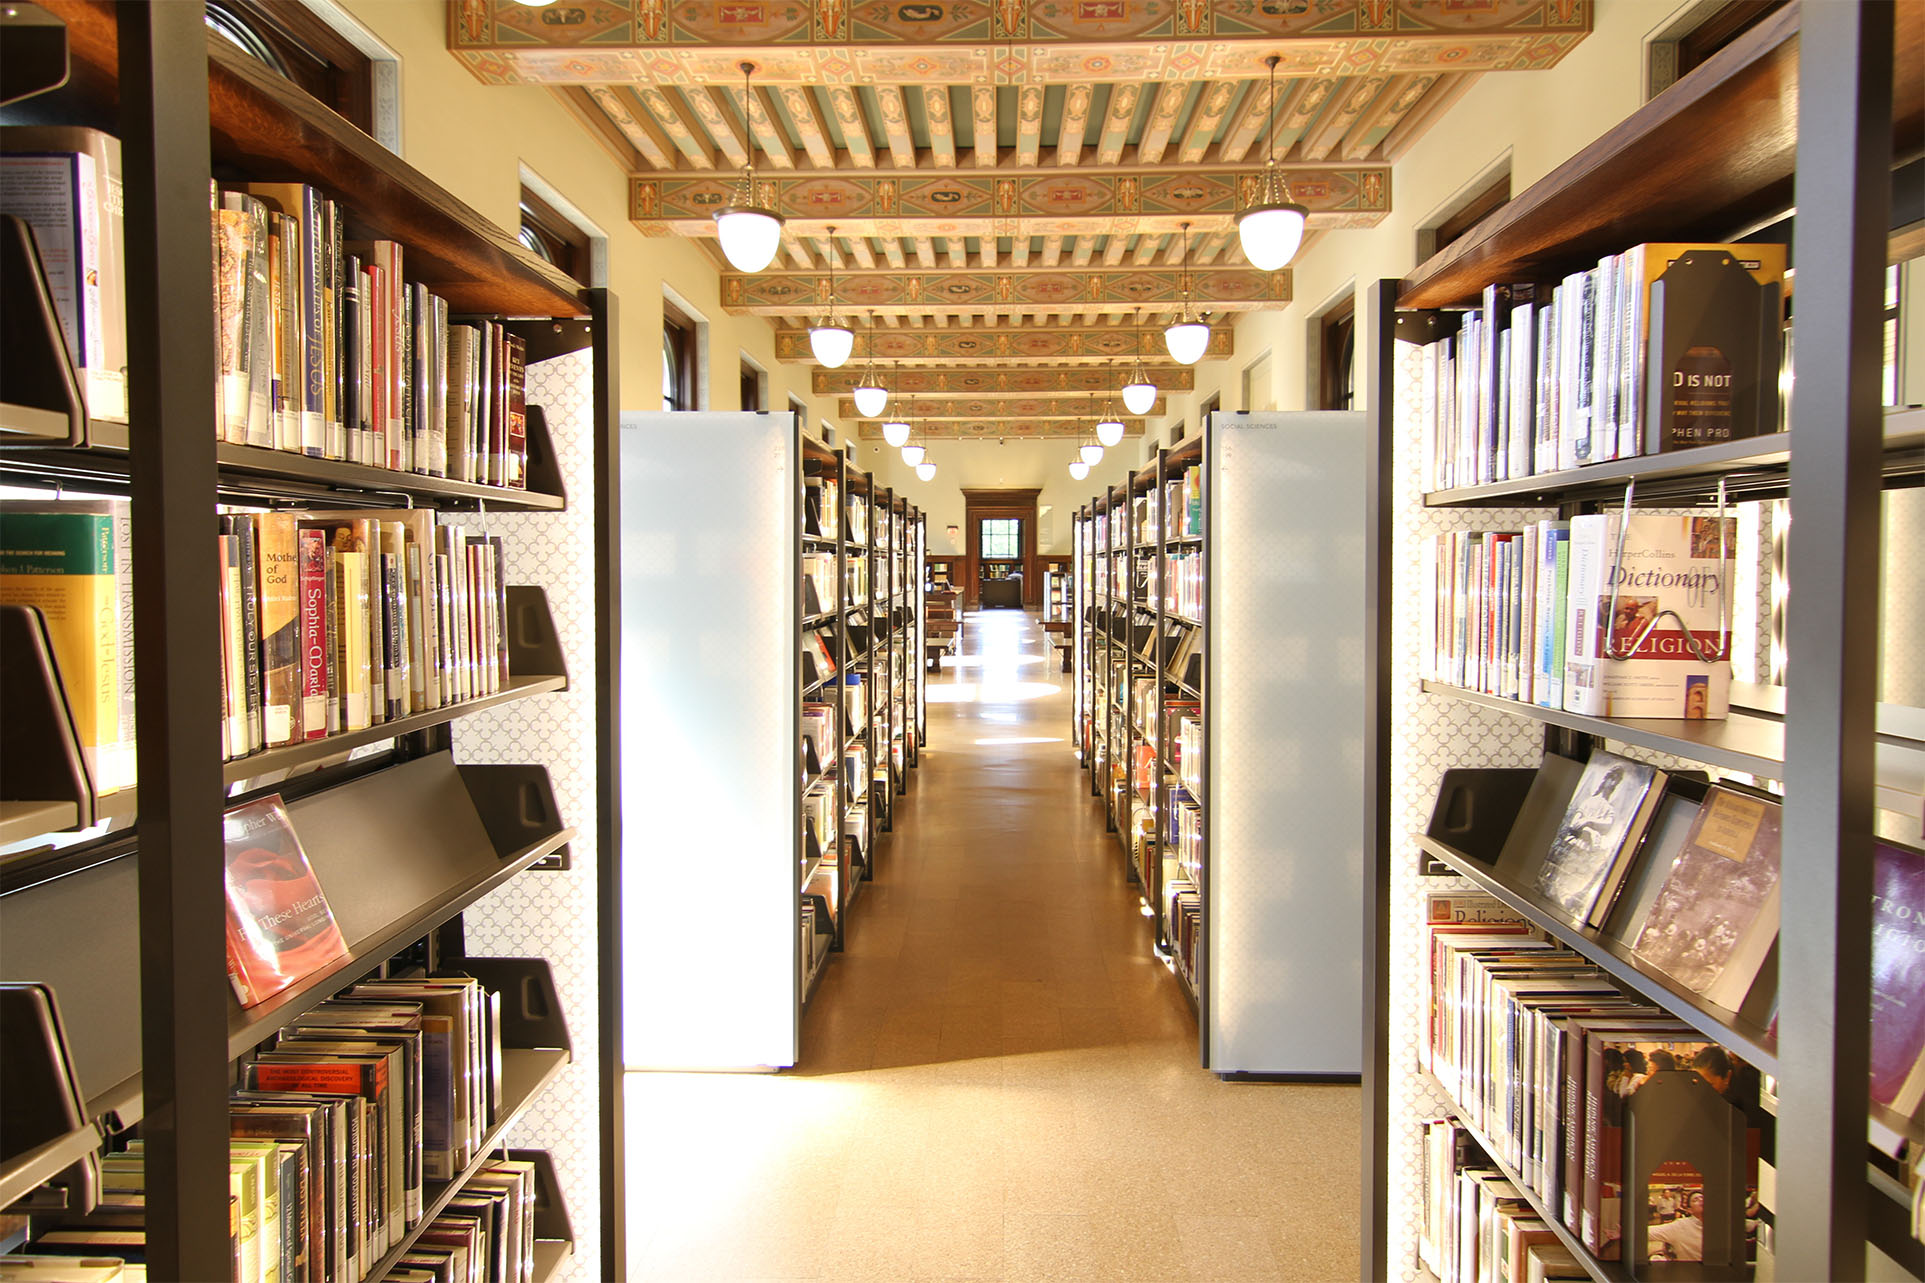 Compact Shelving In Historic Library Renovation